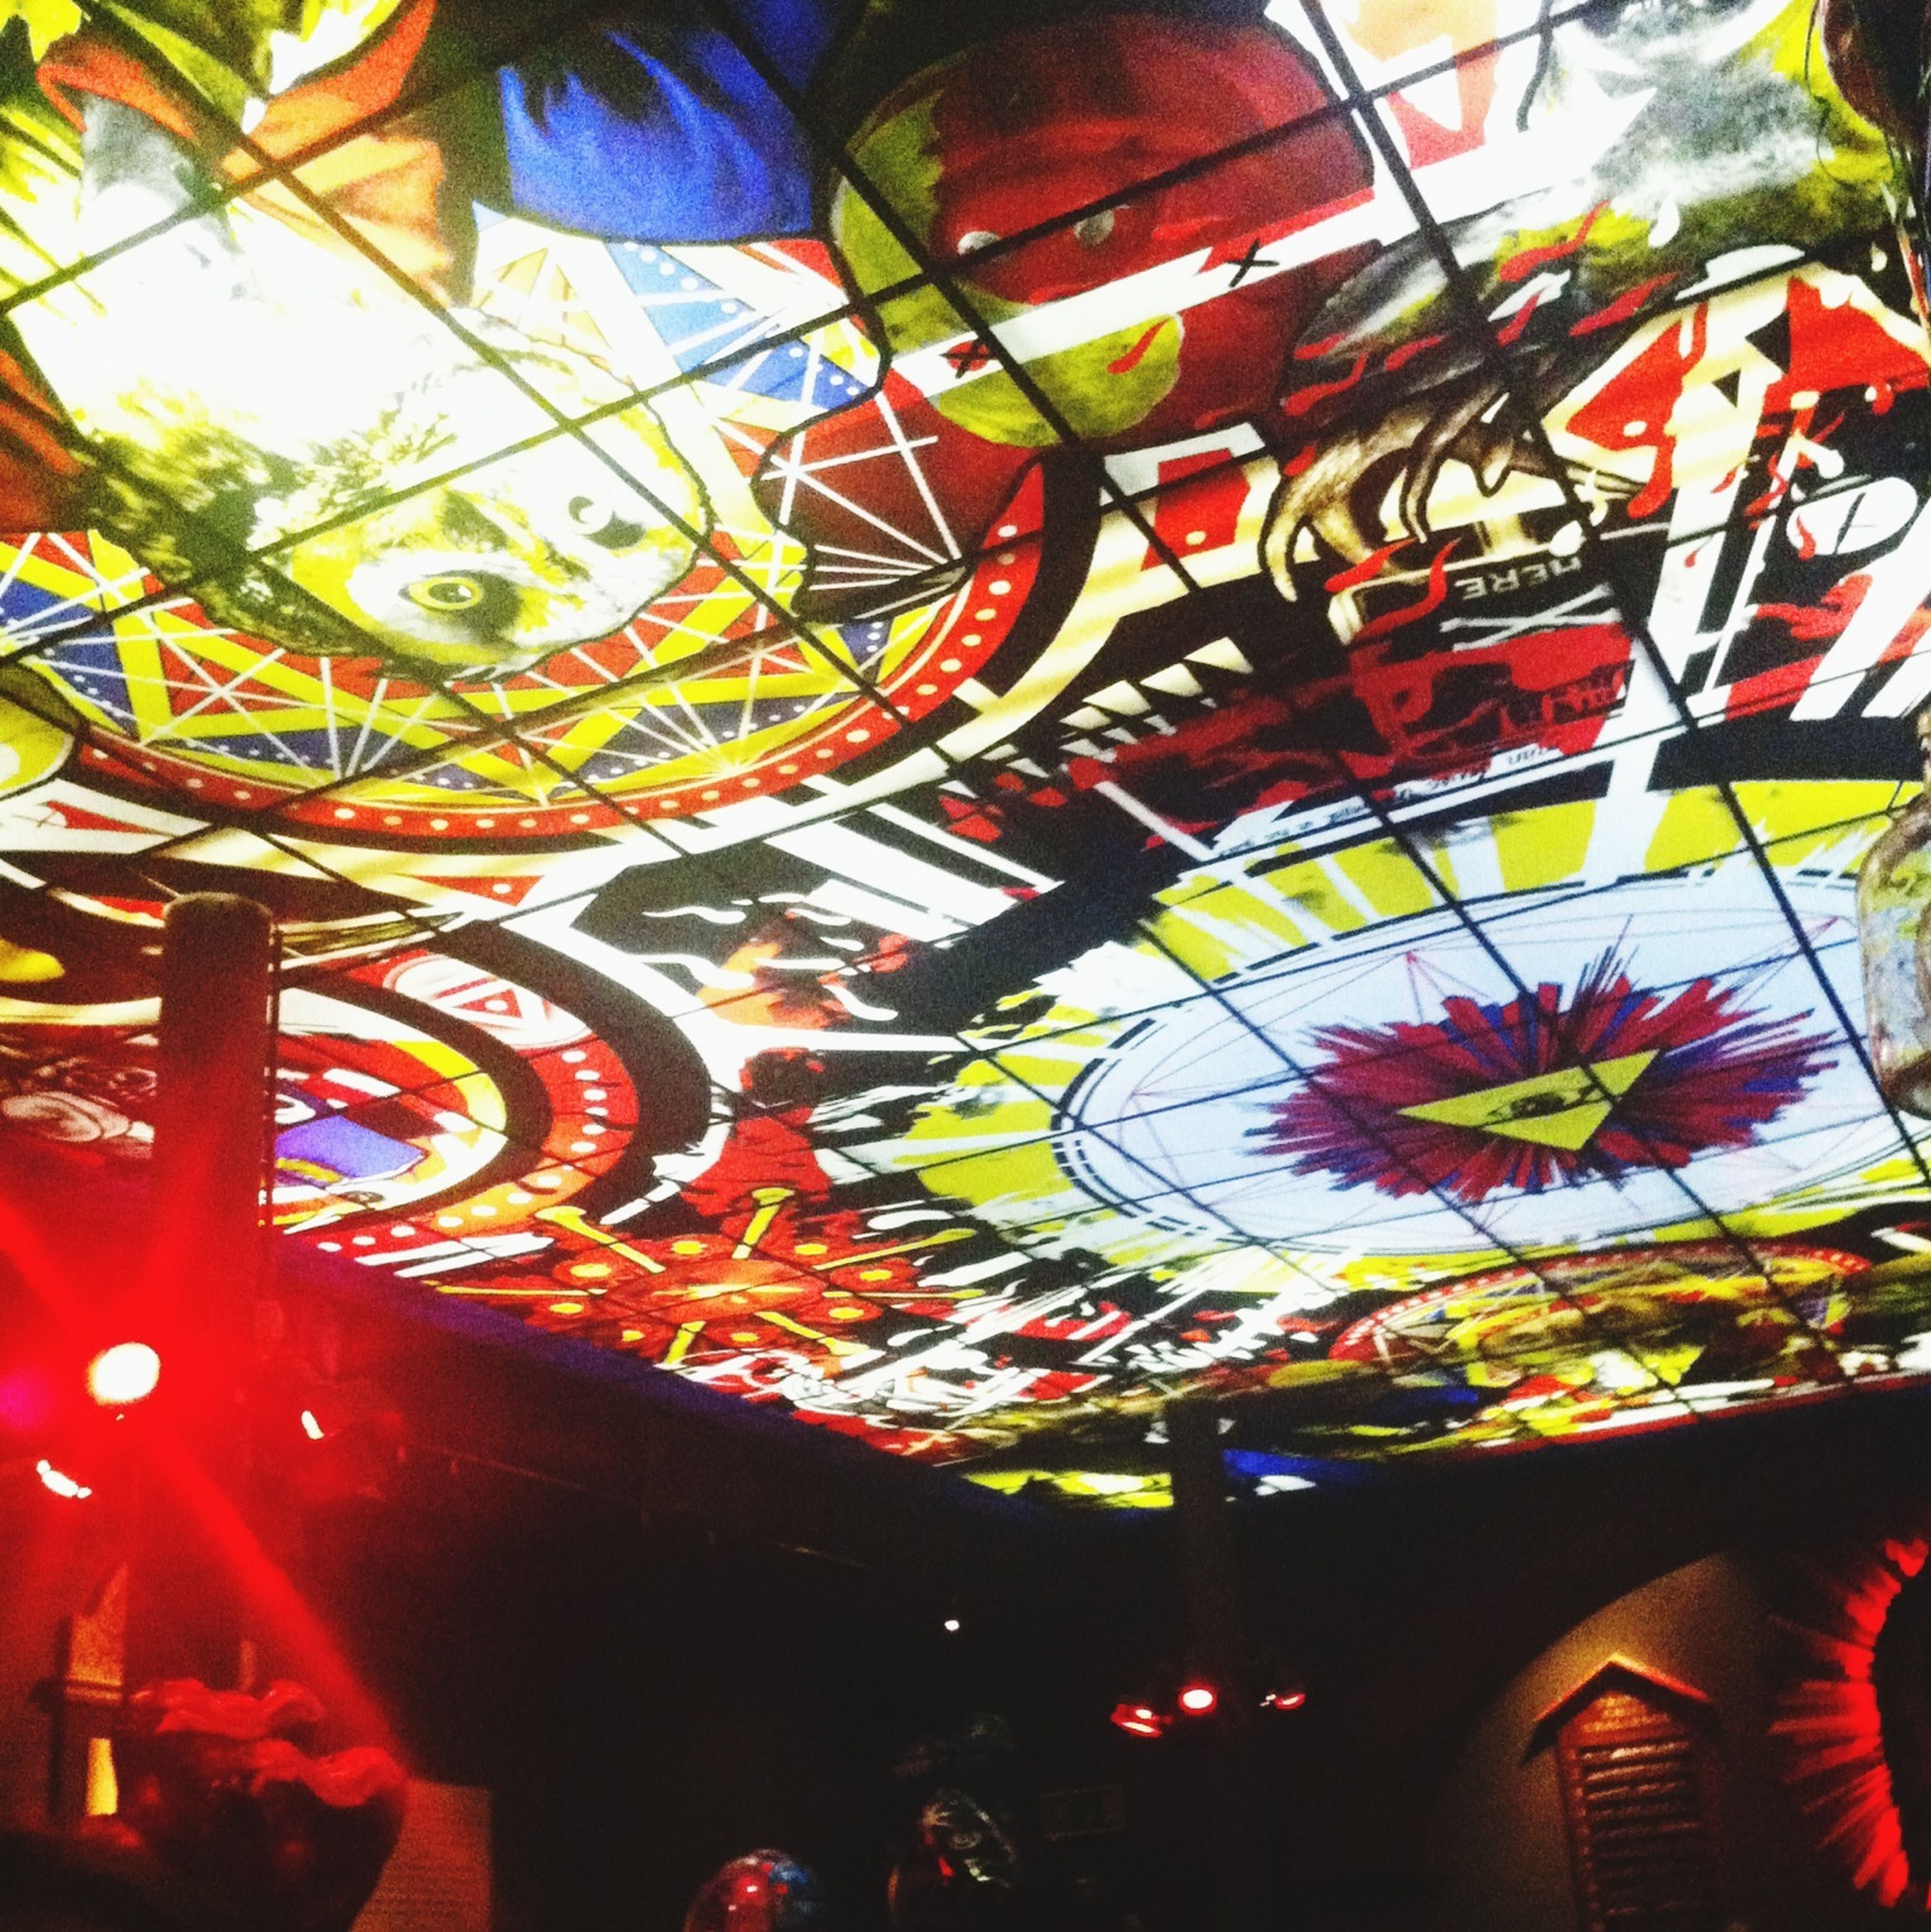 indoors, multi colored, design, ceiling, low angle view, pattern, art, art and craft, decoration, creativity, illuminated, built structure, lighting equipment, hanging, architecture, colorful, no people, day, arts culture and entertainment, ornate